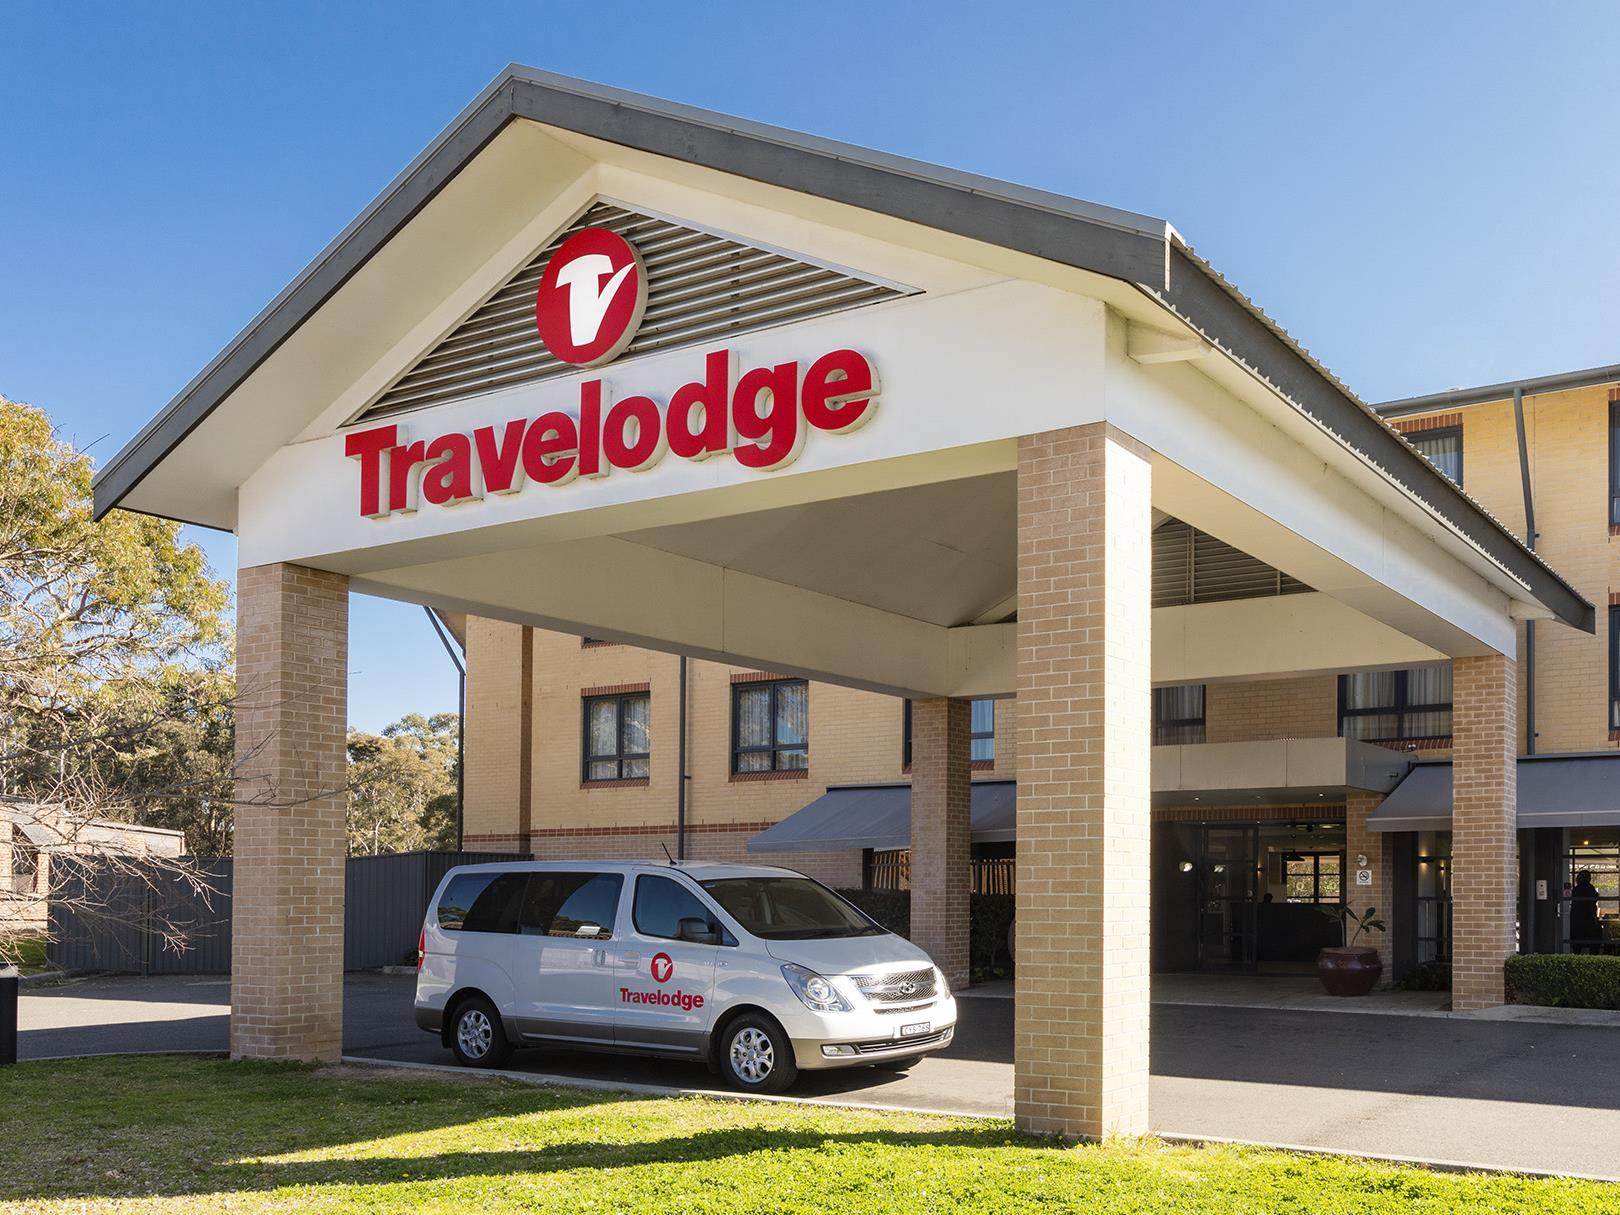 Travelodge Hotel Macquarie North Ryde